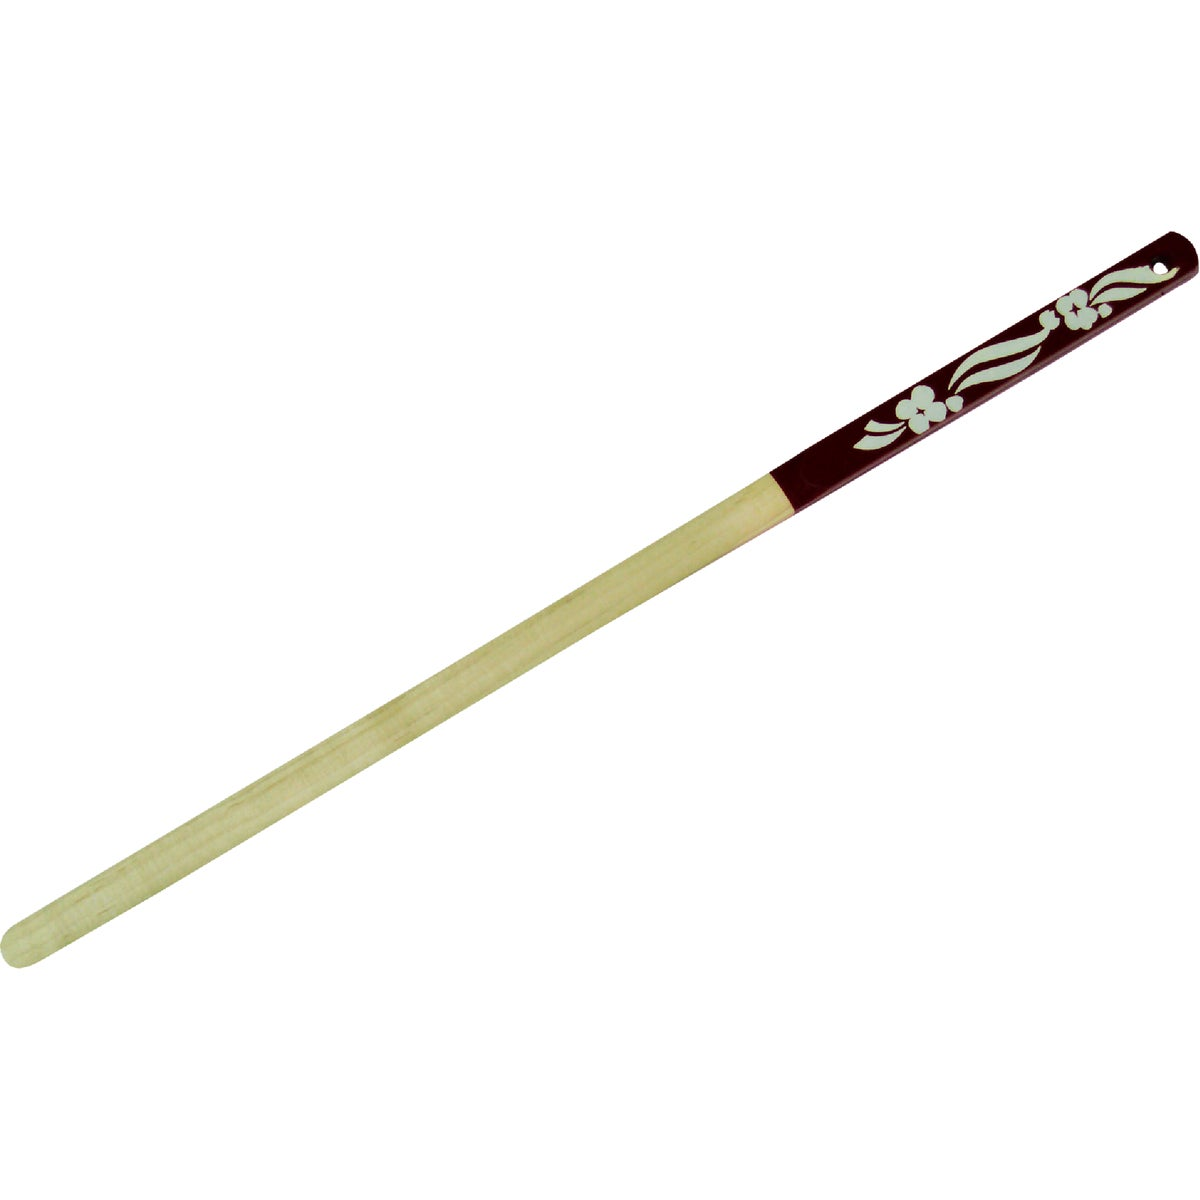 "7.8"" LEFSE STICK - 070 by Bethany Housewares"